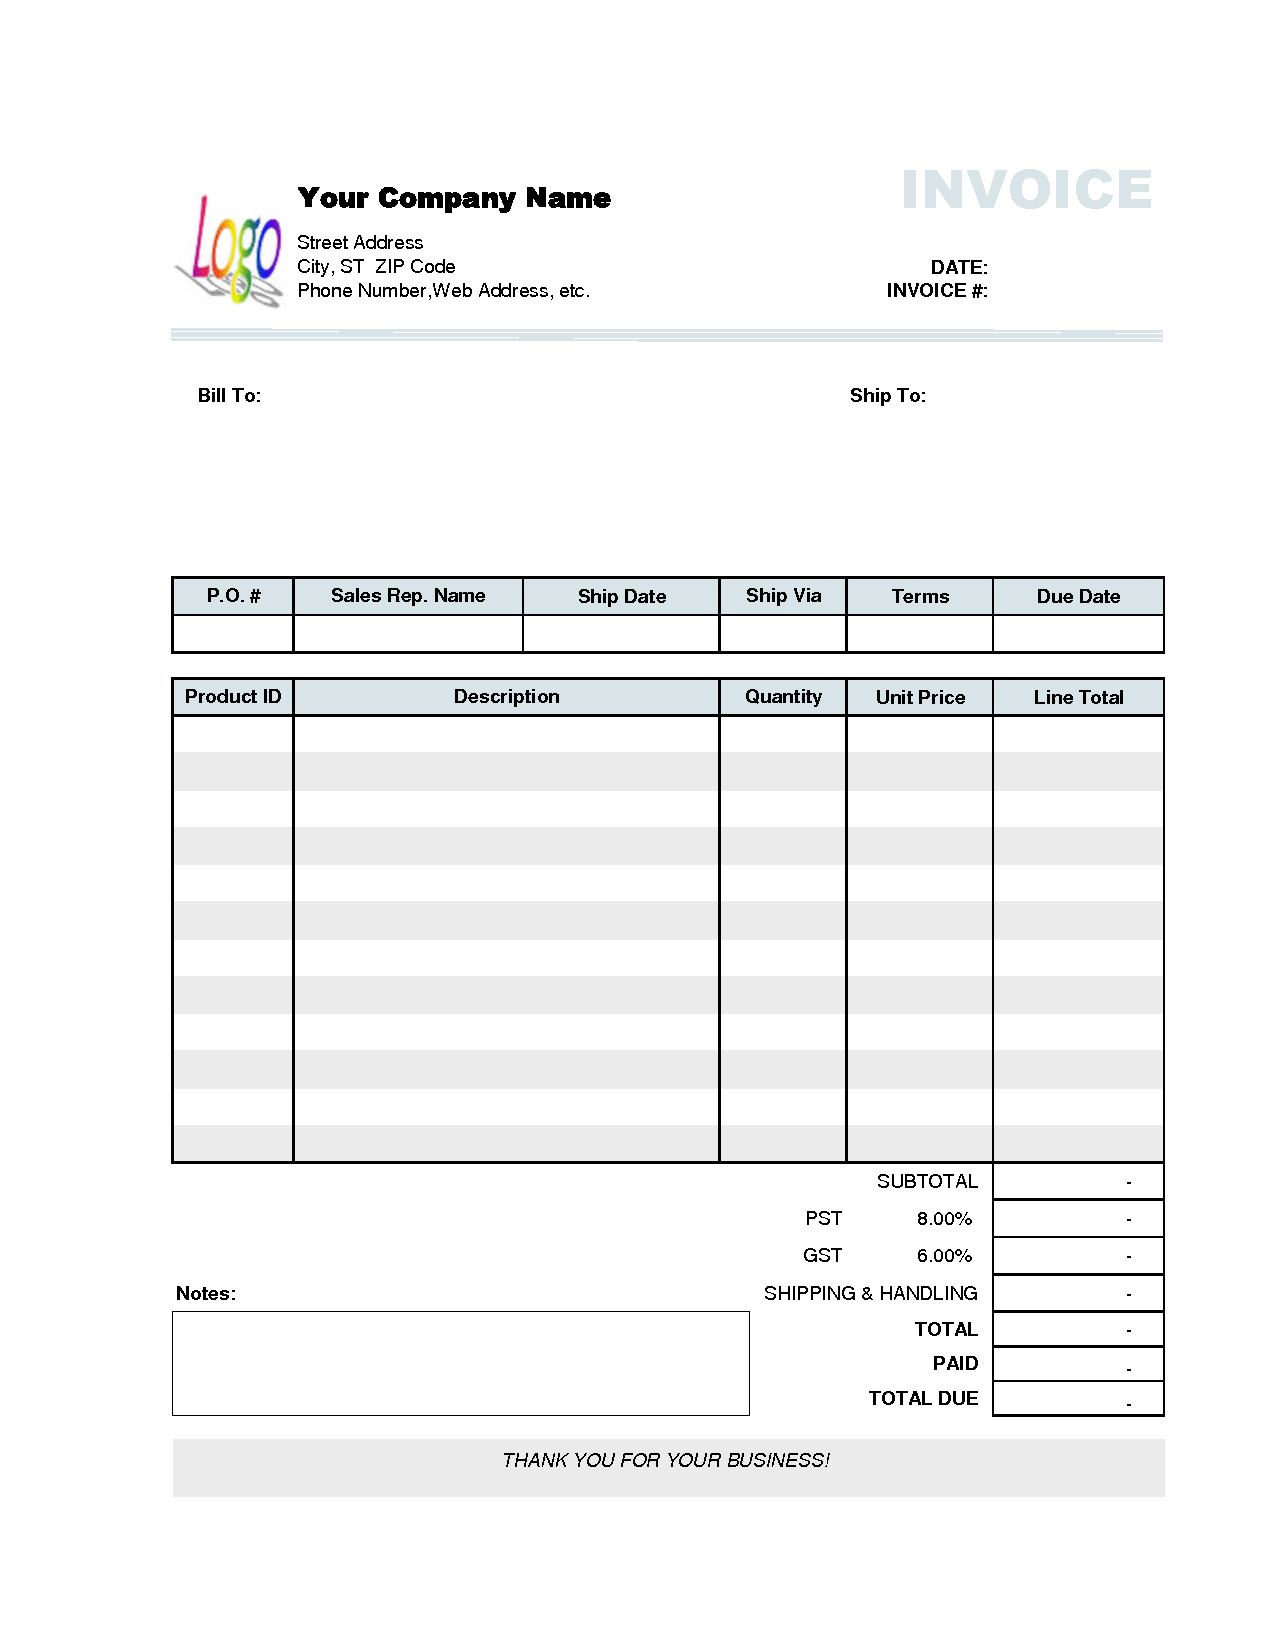 Free Small Business Invoice Template and Business Invoice Template Invoice Example